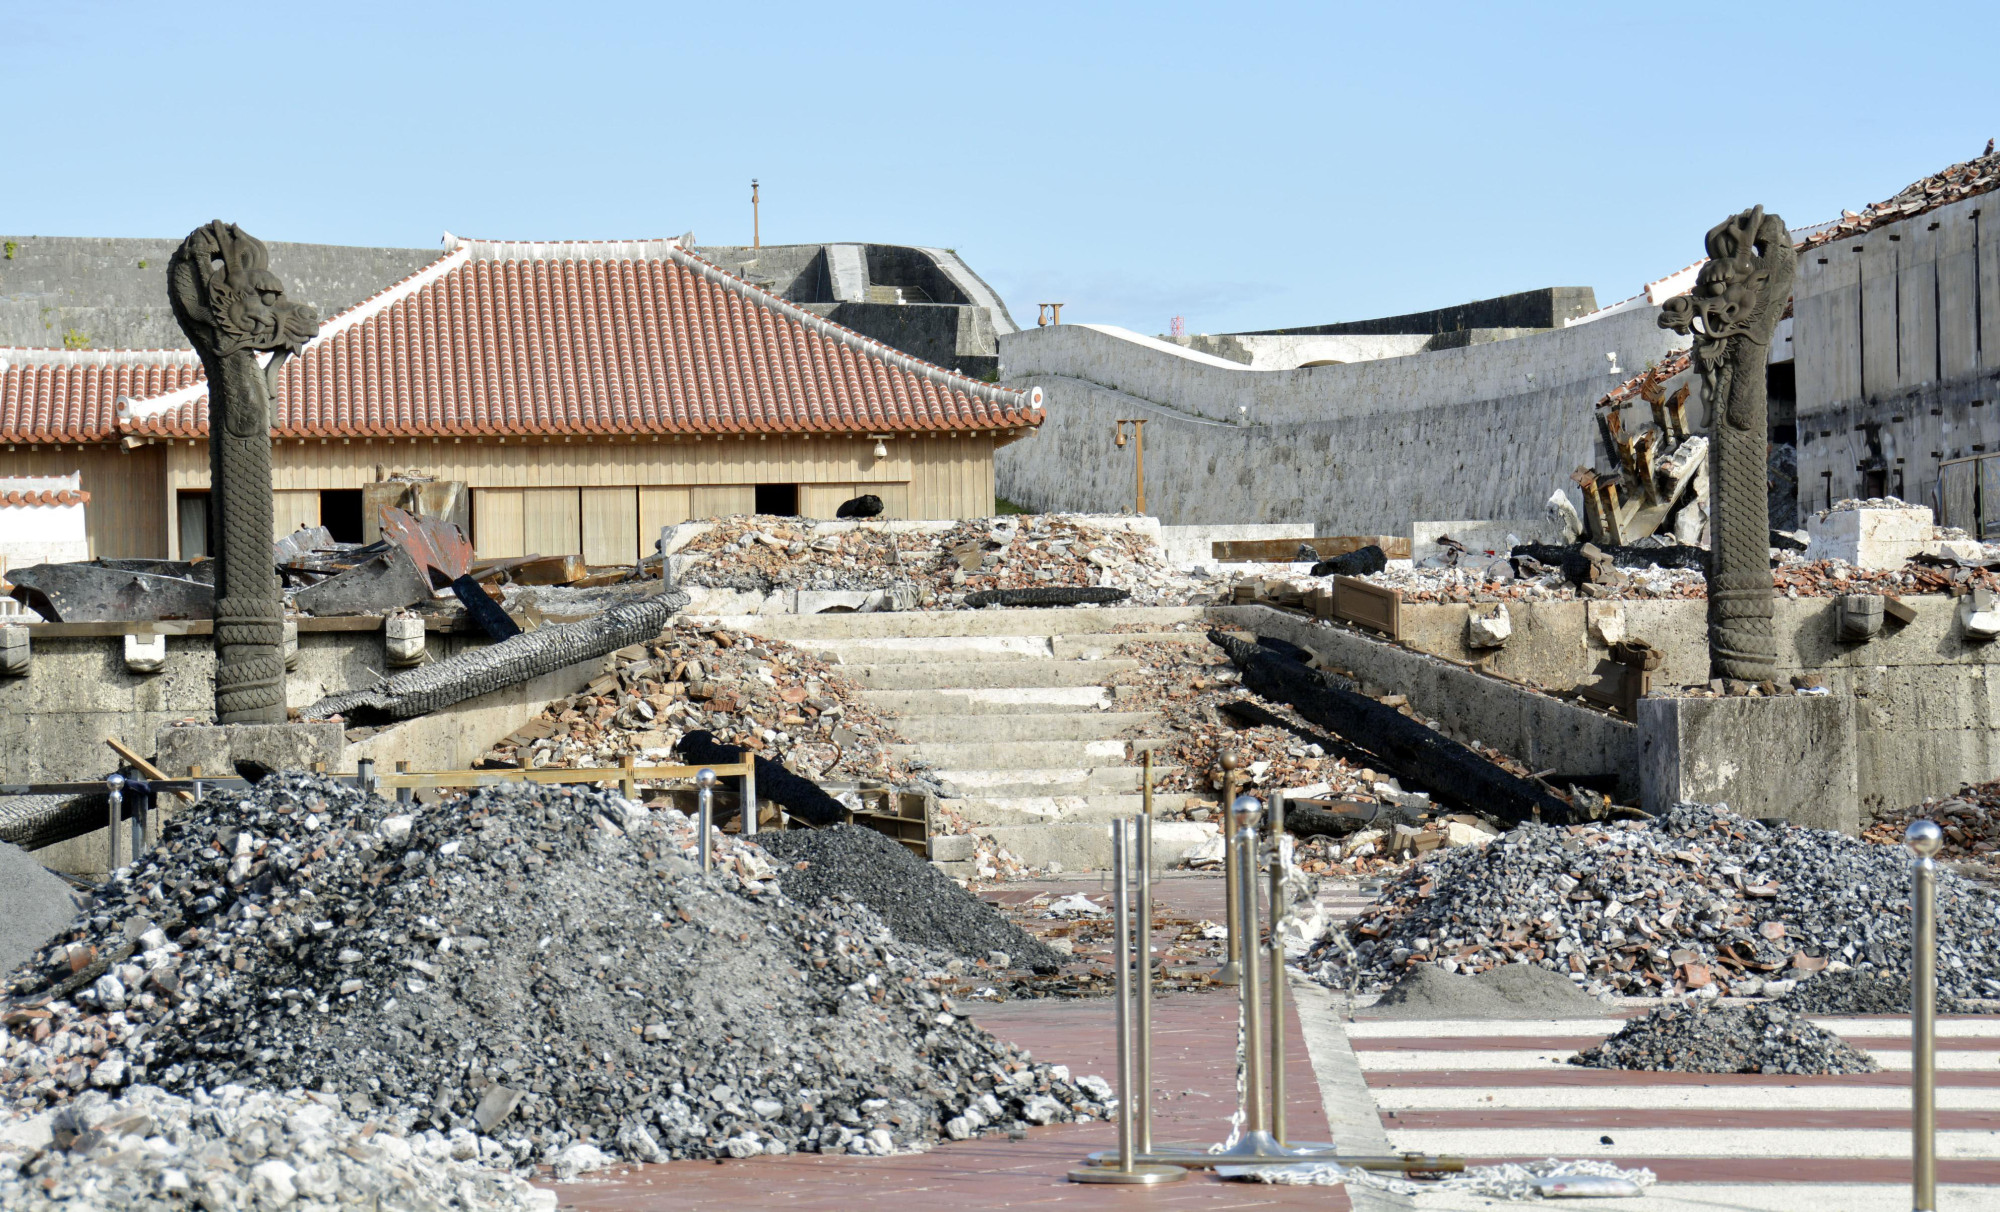 The burned-out remains of buildings at Shuri Castle, the main symbol of Okinawa Prefecture, are shown in Naha after a fire destroyed part of the UNESCO World Heritage site in October. | KYODO